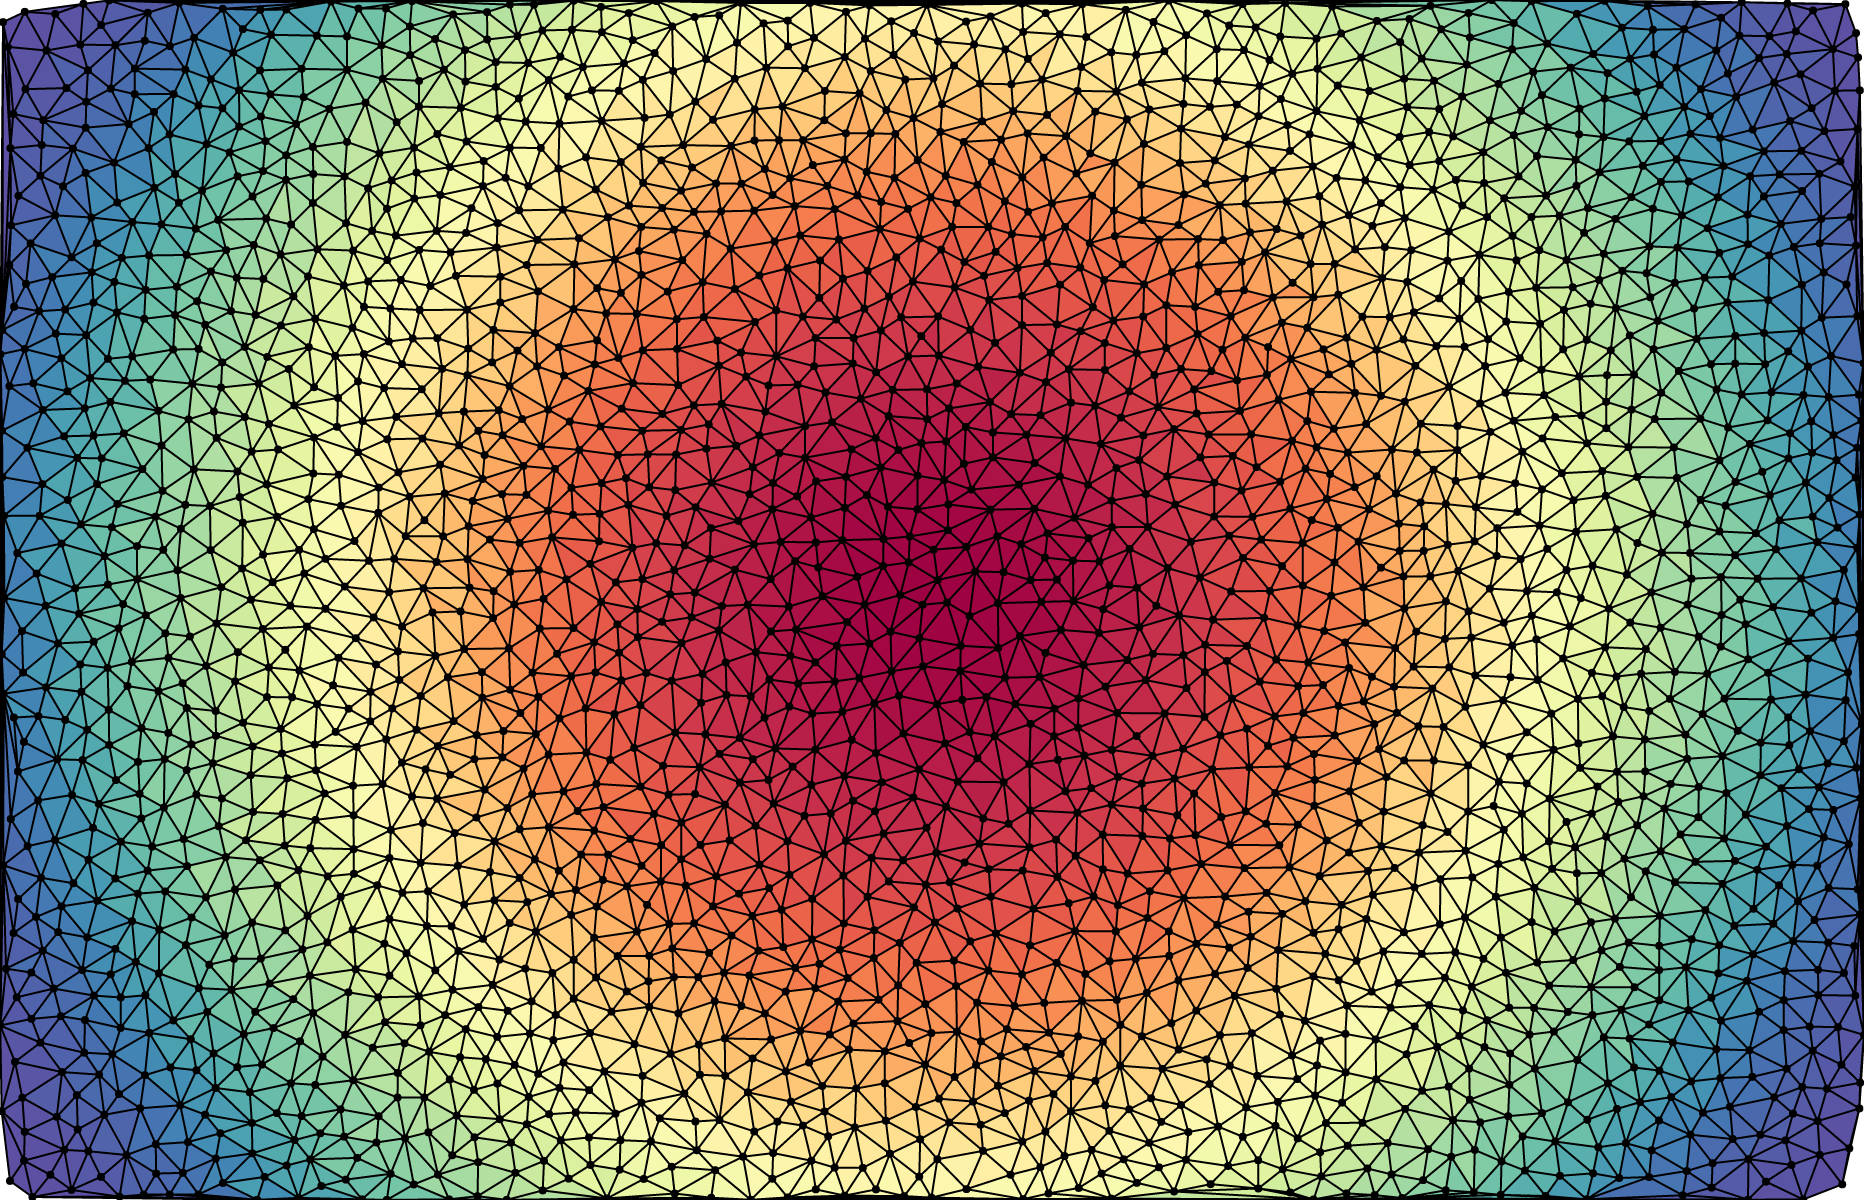 delaunay.renderTriangle